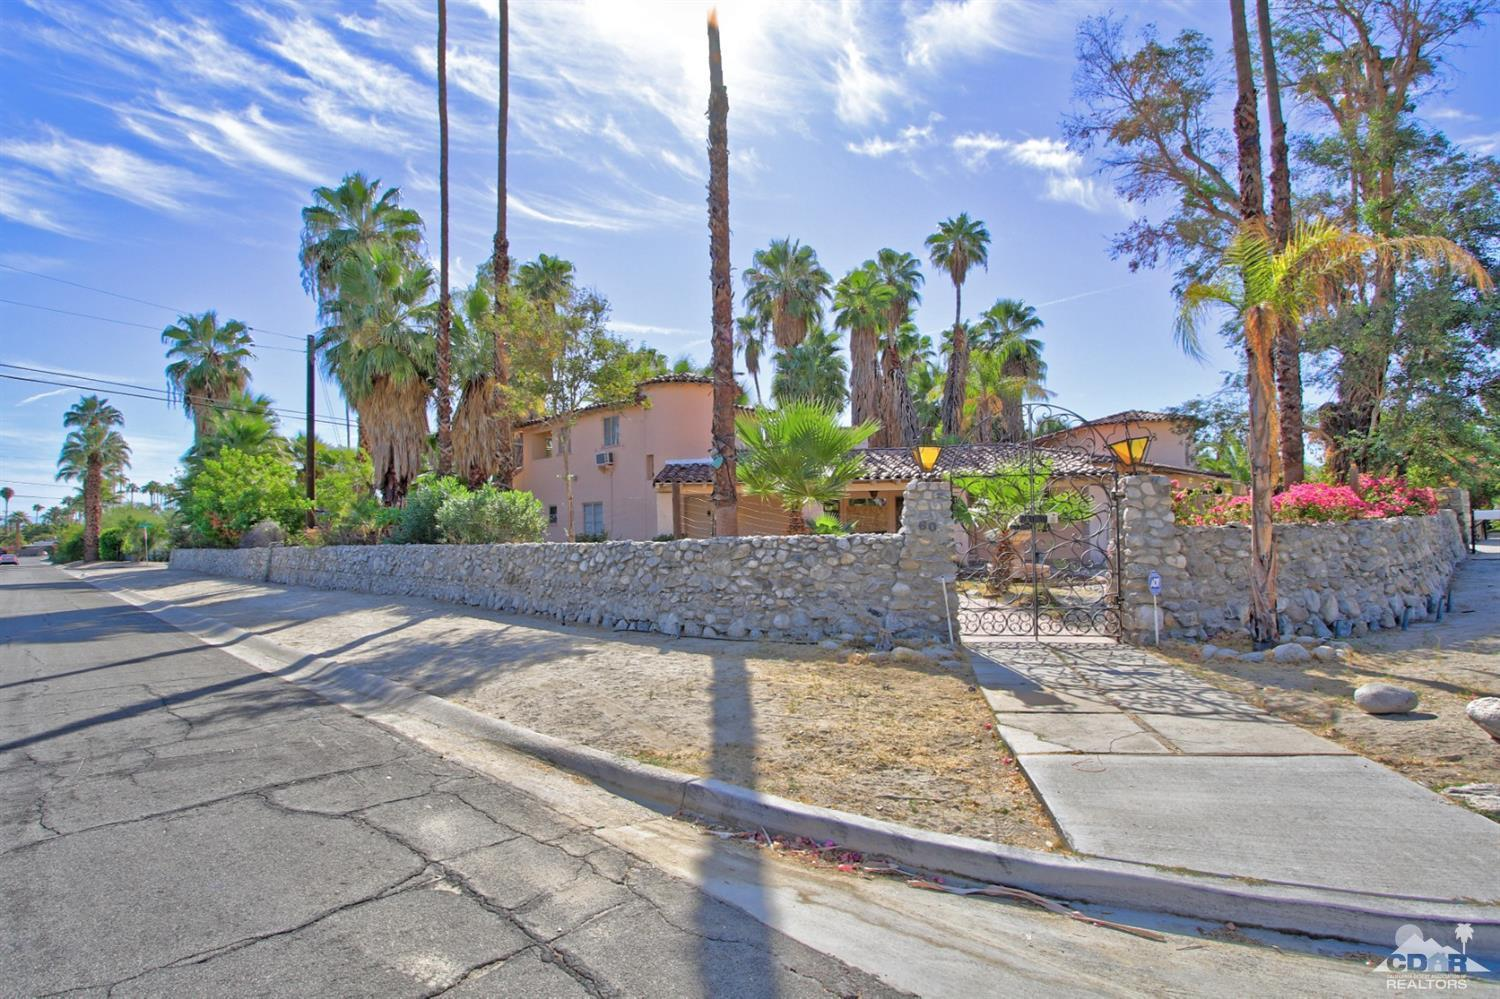 608 S Indian Trail, Palm Springs, California 92264, 5 Bedrooms Bedrooms, ,5 BathroomsBathrooms,Residential,Sold,608 S Indian Trail,218028426